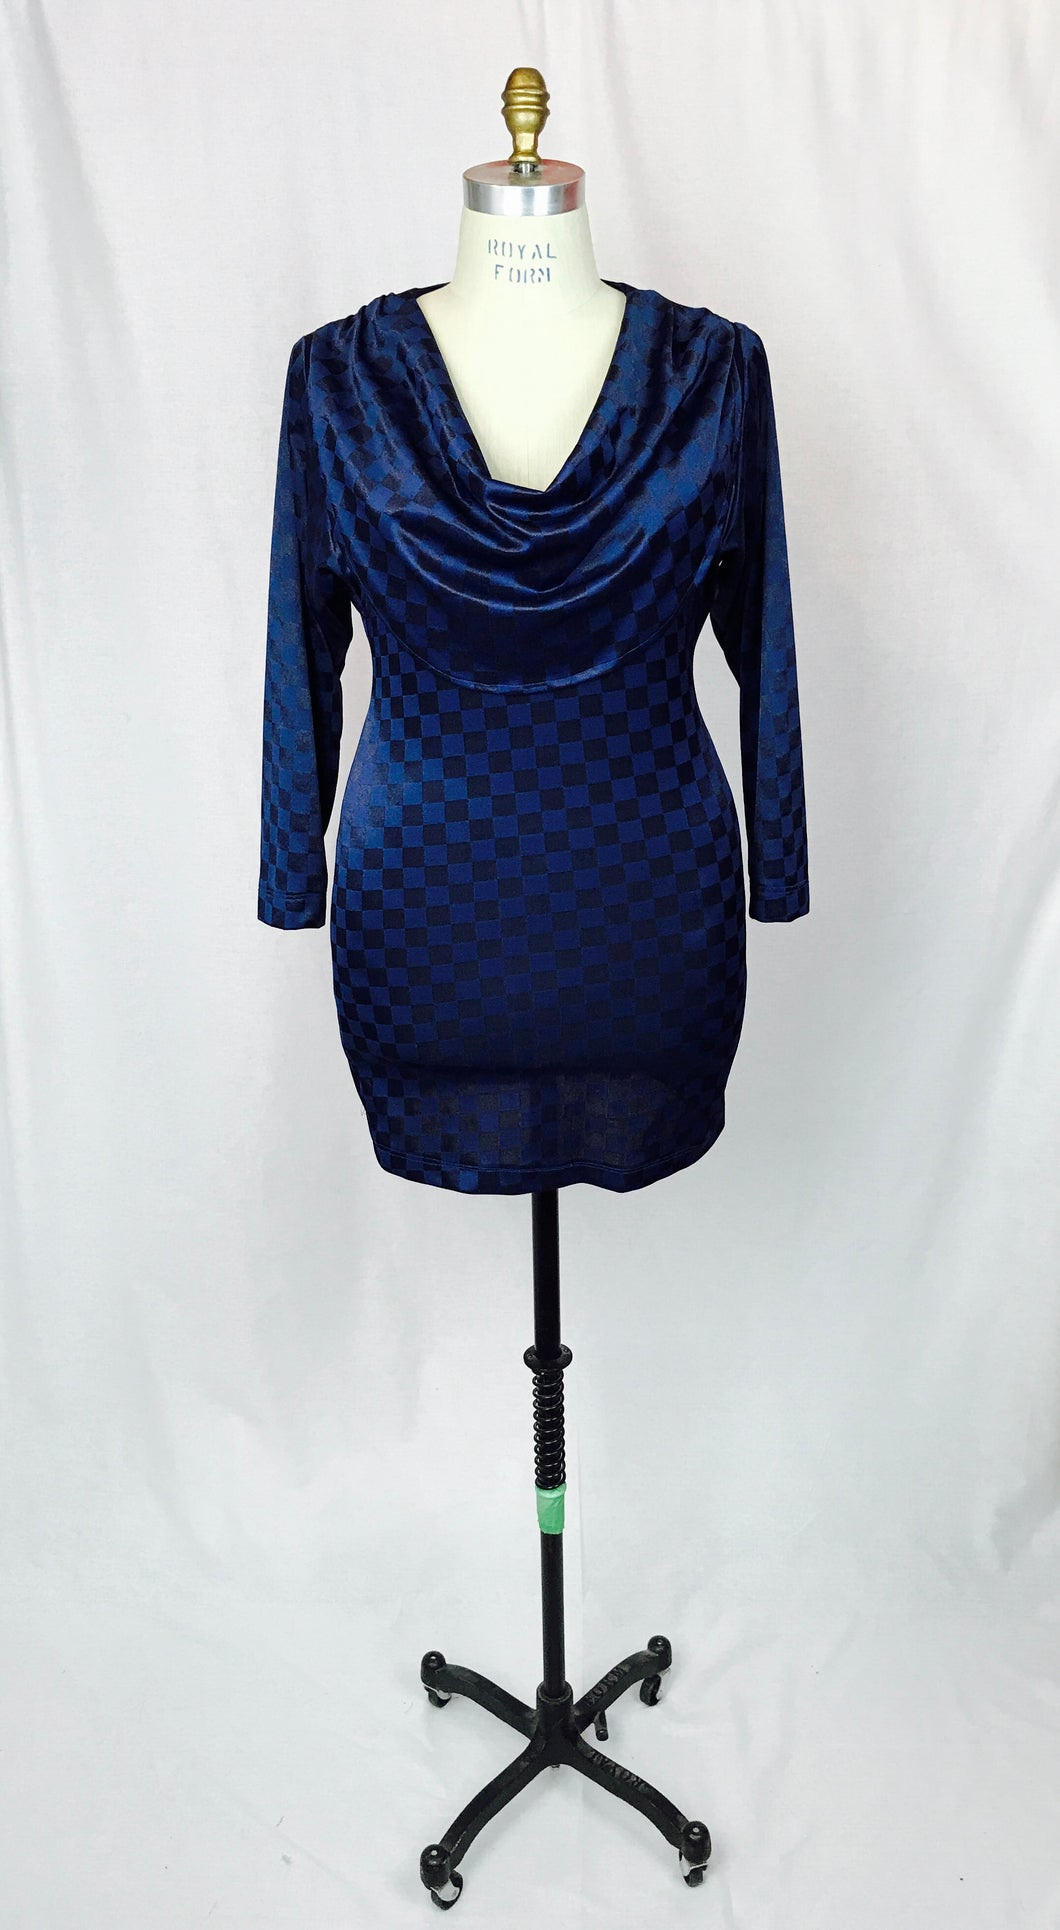 Cowl feature, long sleeve, reversible back to front.